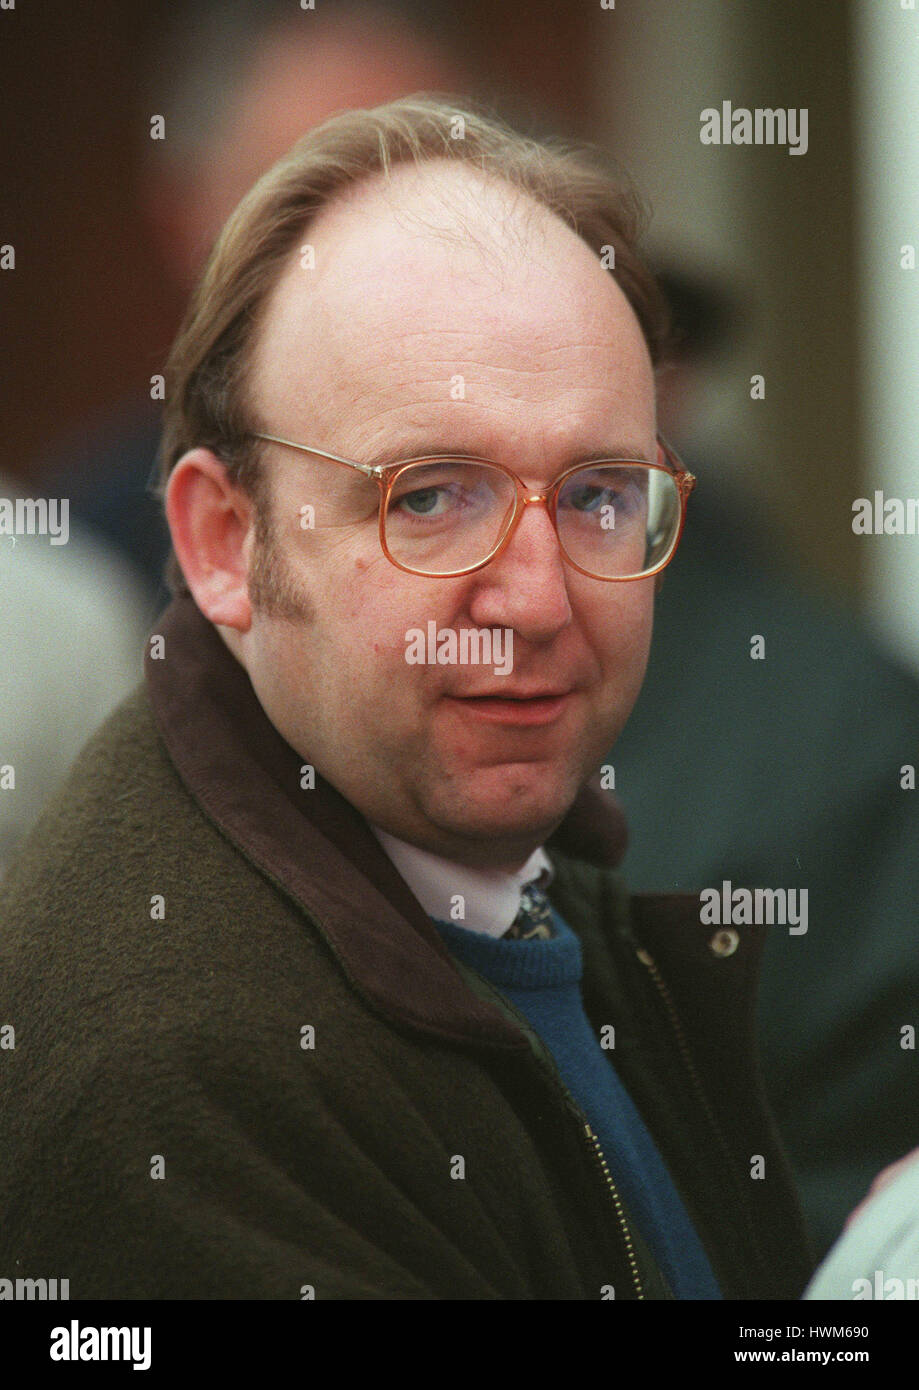 CORNELIUS LYSAGHT BBC RADIO RACING CORRESPONDENT 19 November 1997 - Stock Image